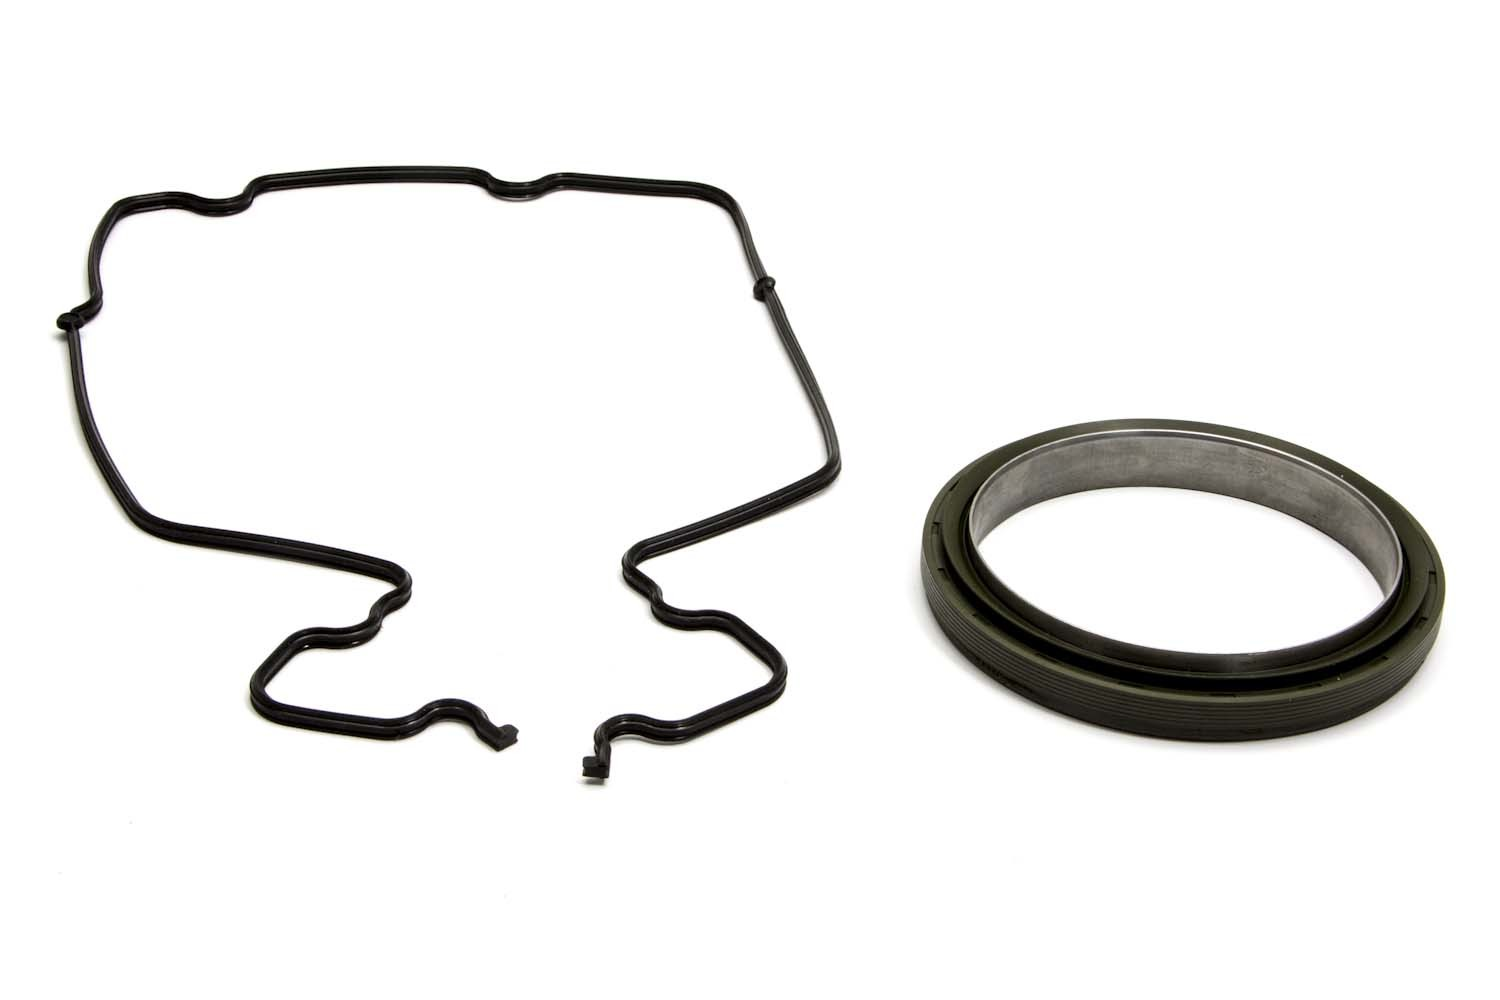 Michigan 77 Jv Rear Main Seal Set